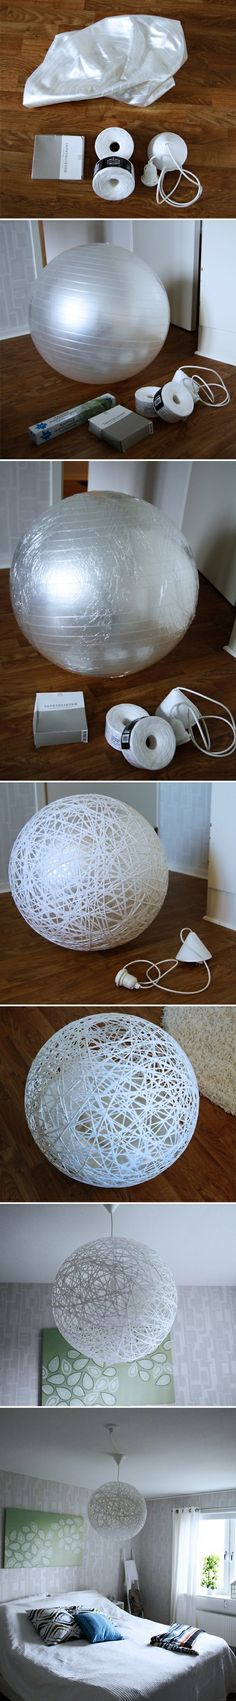 A reebok ball, cling film, string and wallpaper glue and I can make my favourite lampshade myself - so making this sometime!